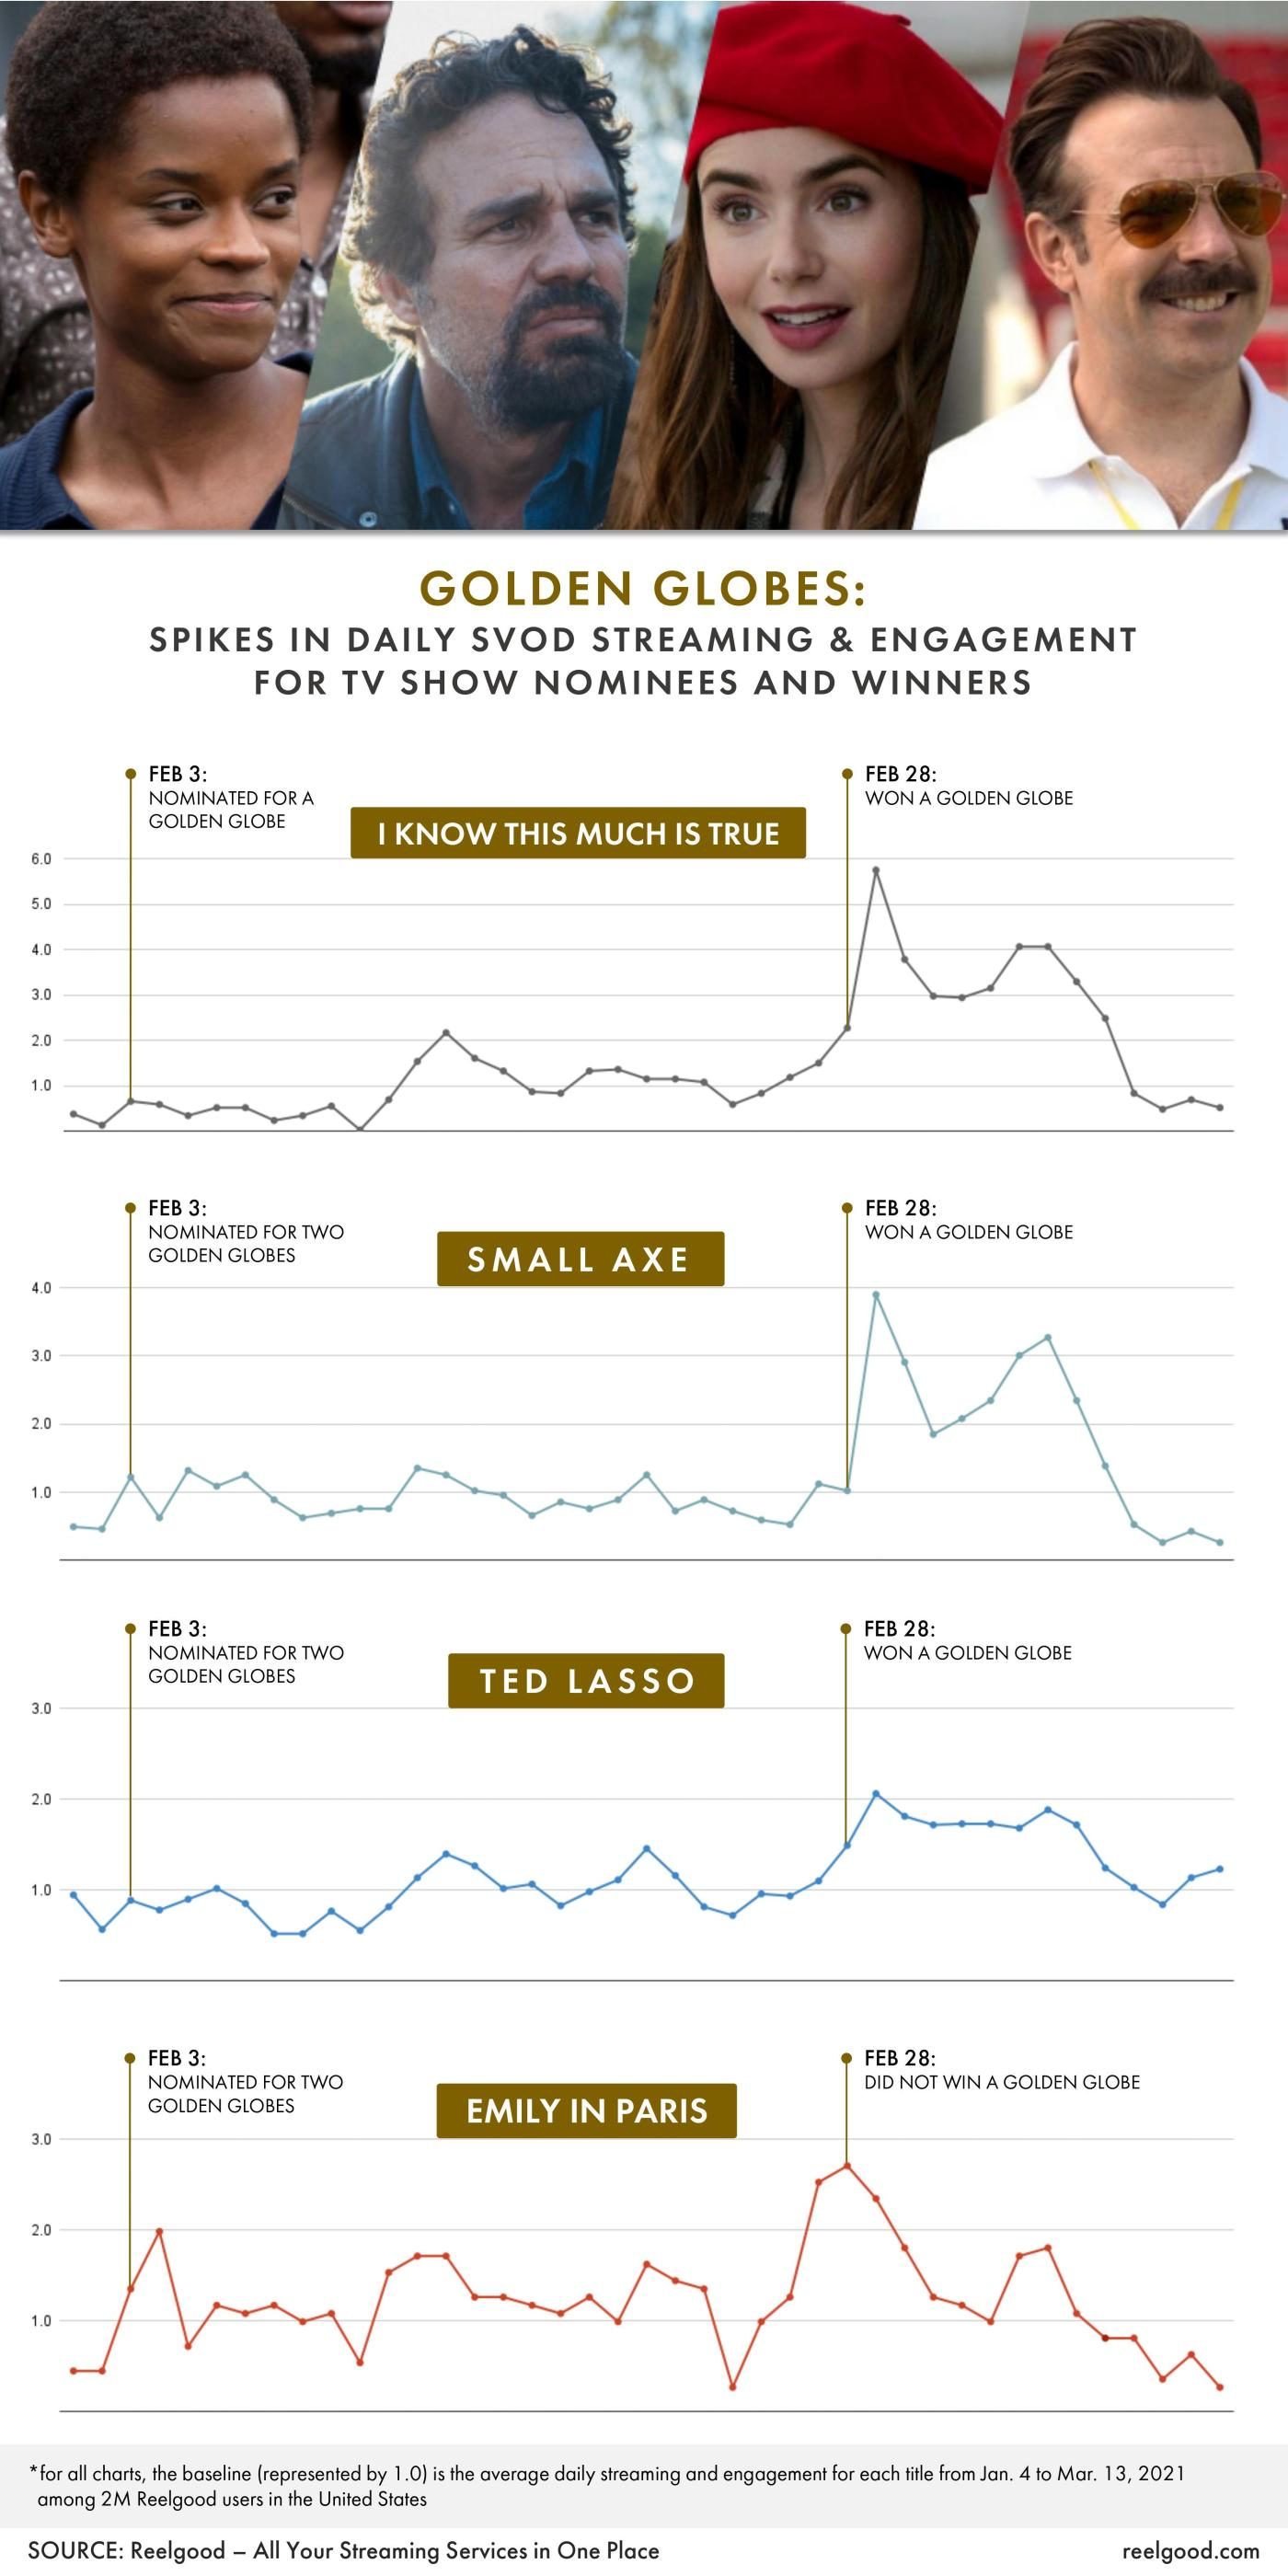 Reelgood data on Golden Globes effect on TV show streaming activity